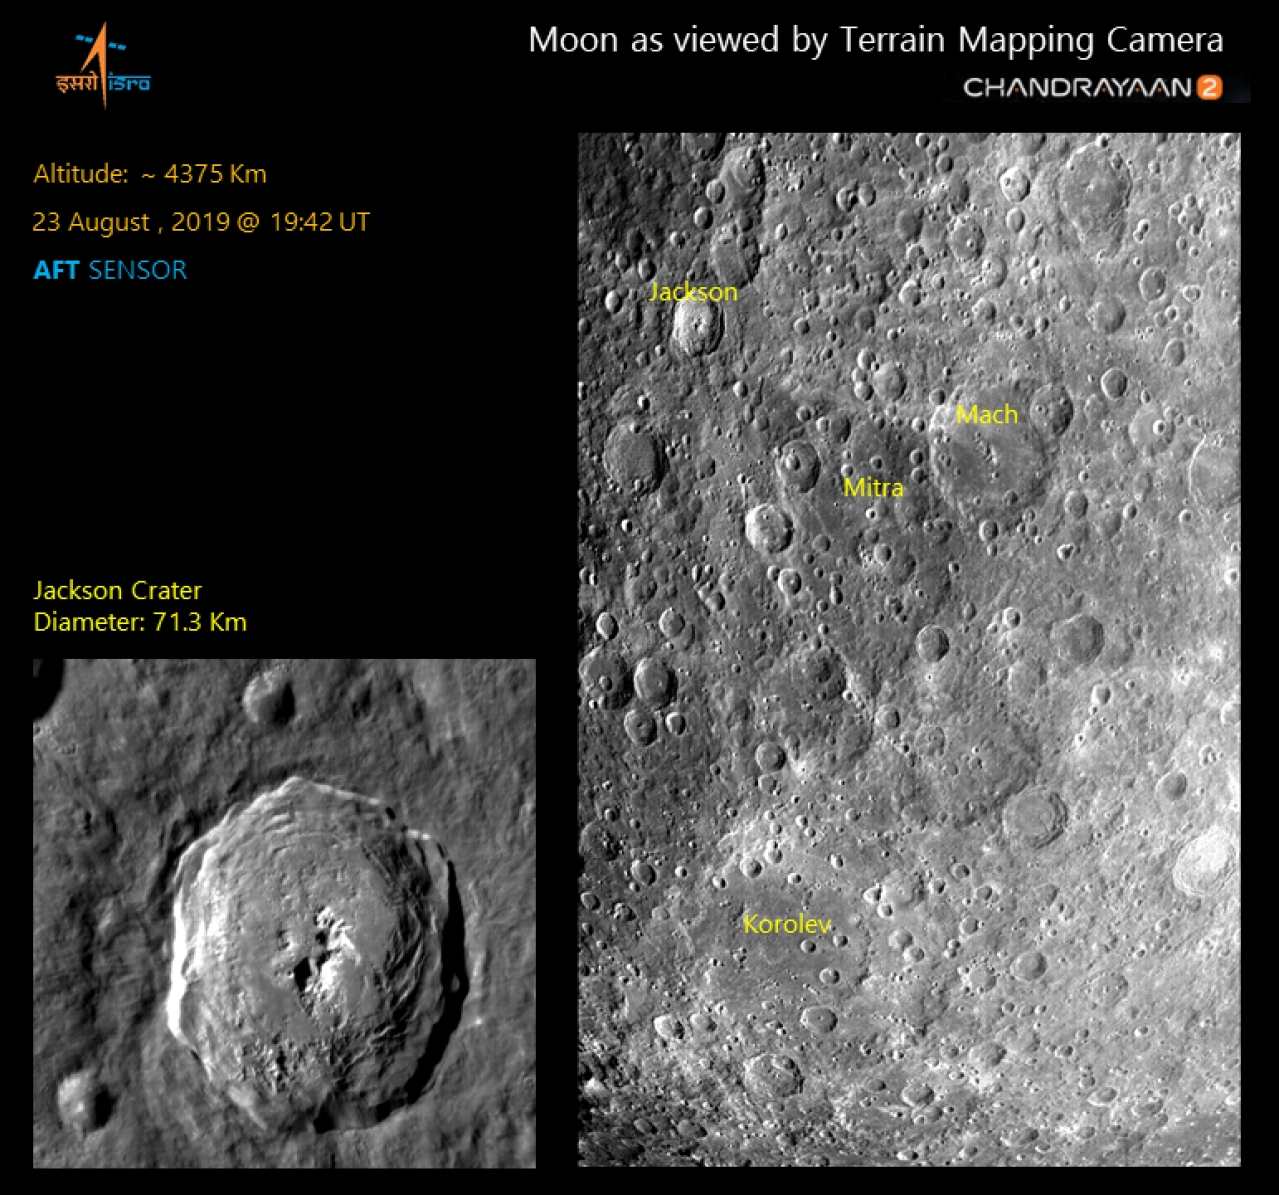 Impact craters such as Jackson, Mitra, Mach and Korolev (Source: @ISRO/Twitter)